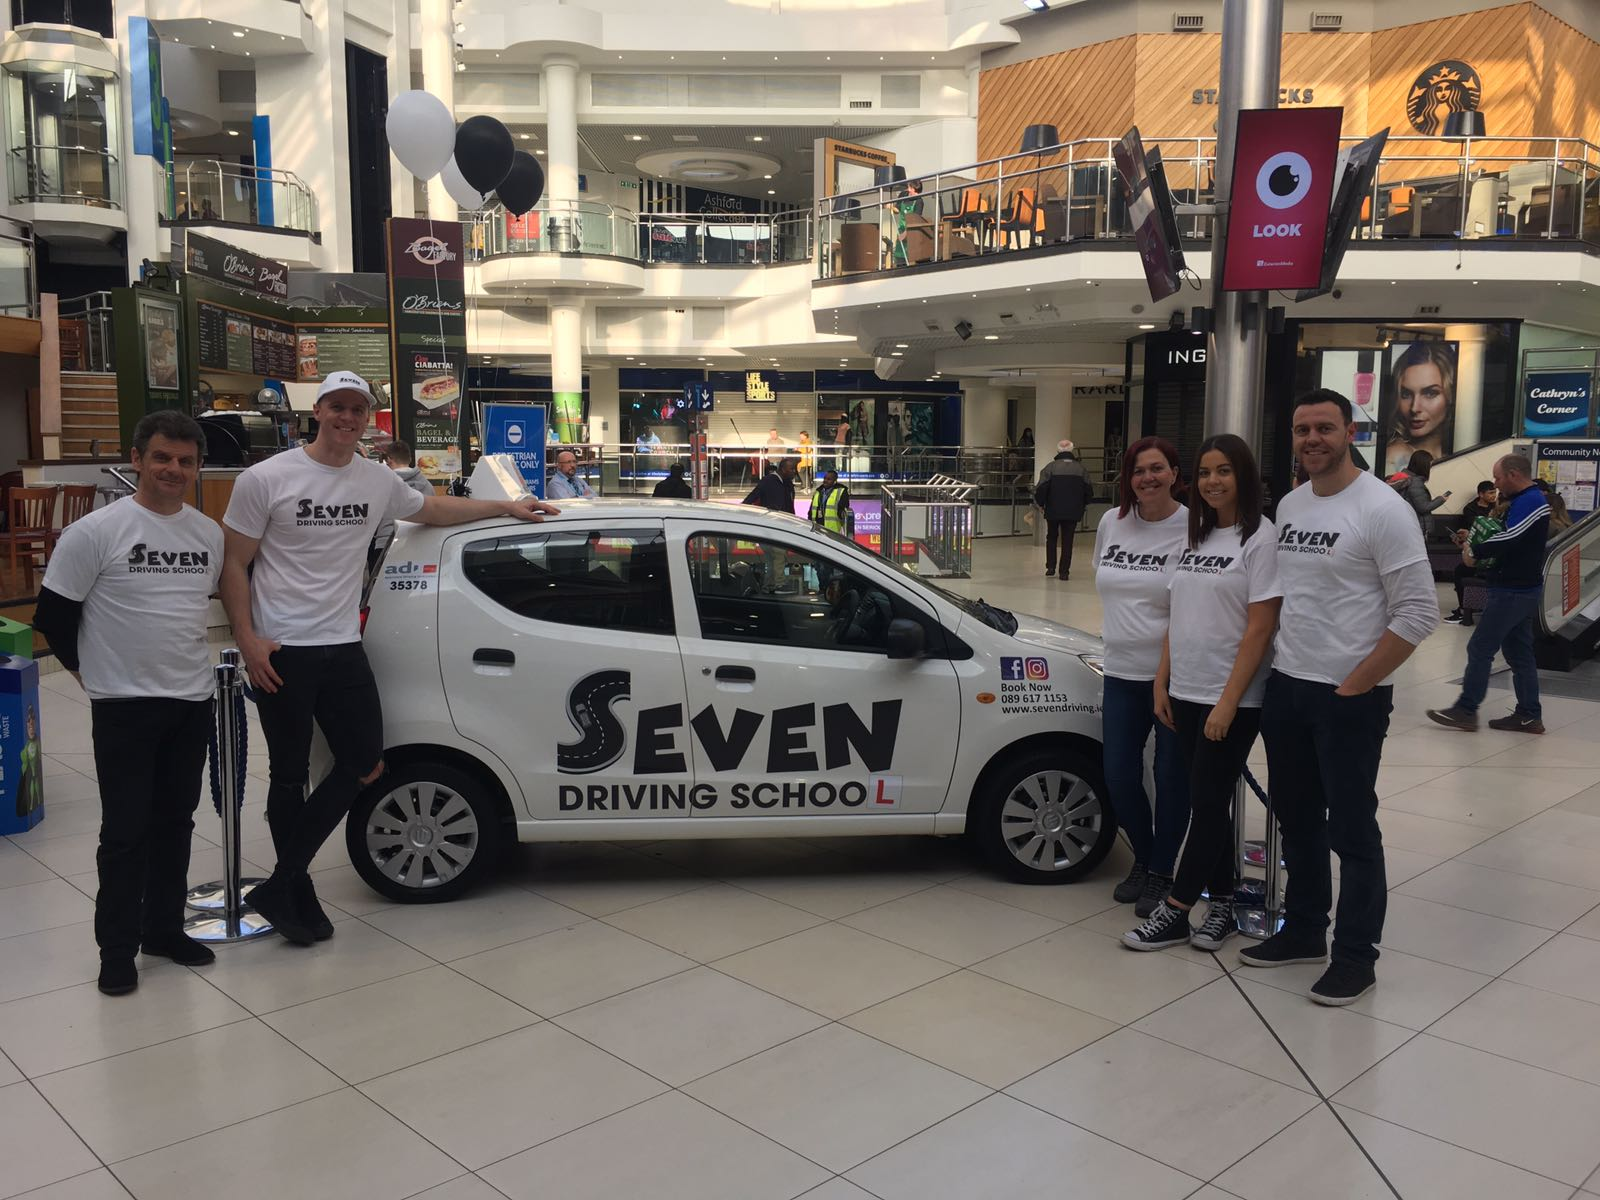 Seven Driving School Promo Day at The Square Tallaght